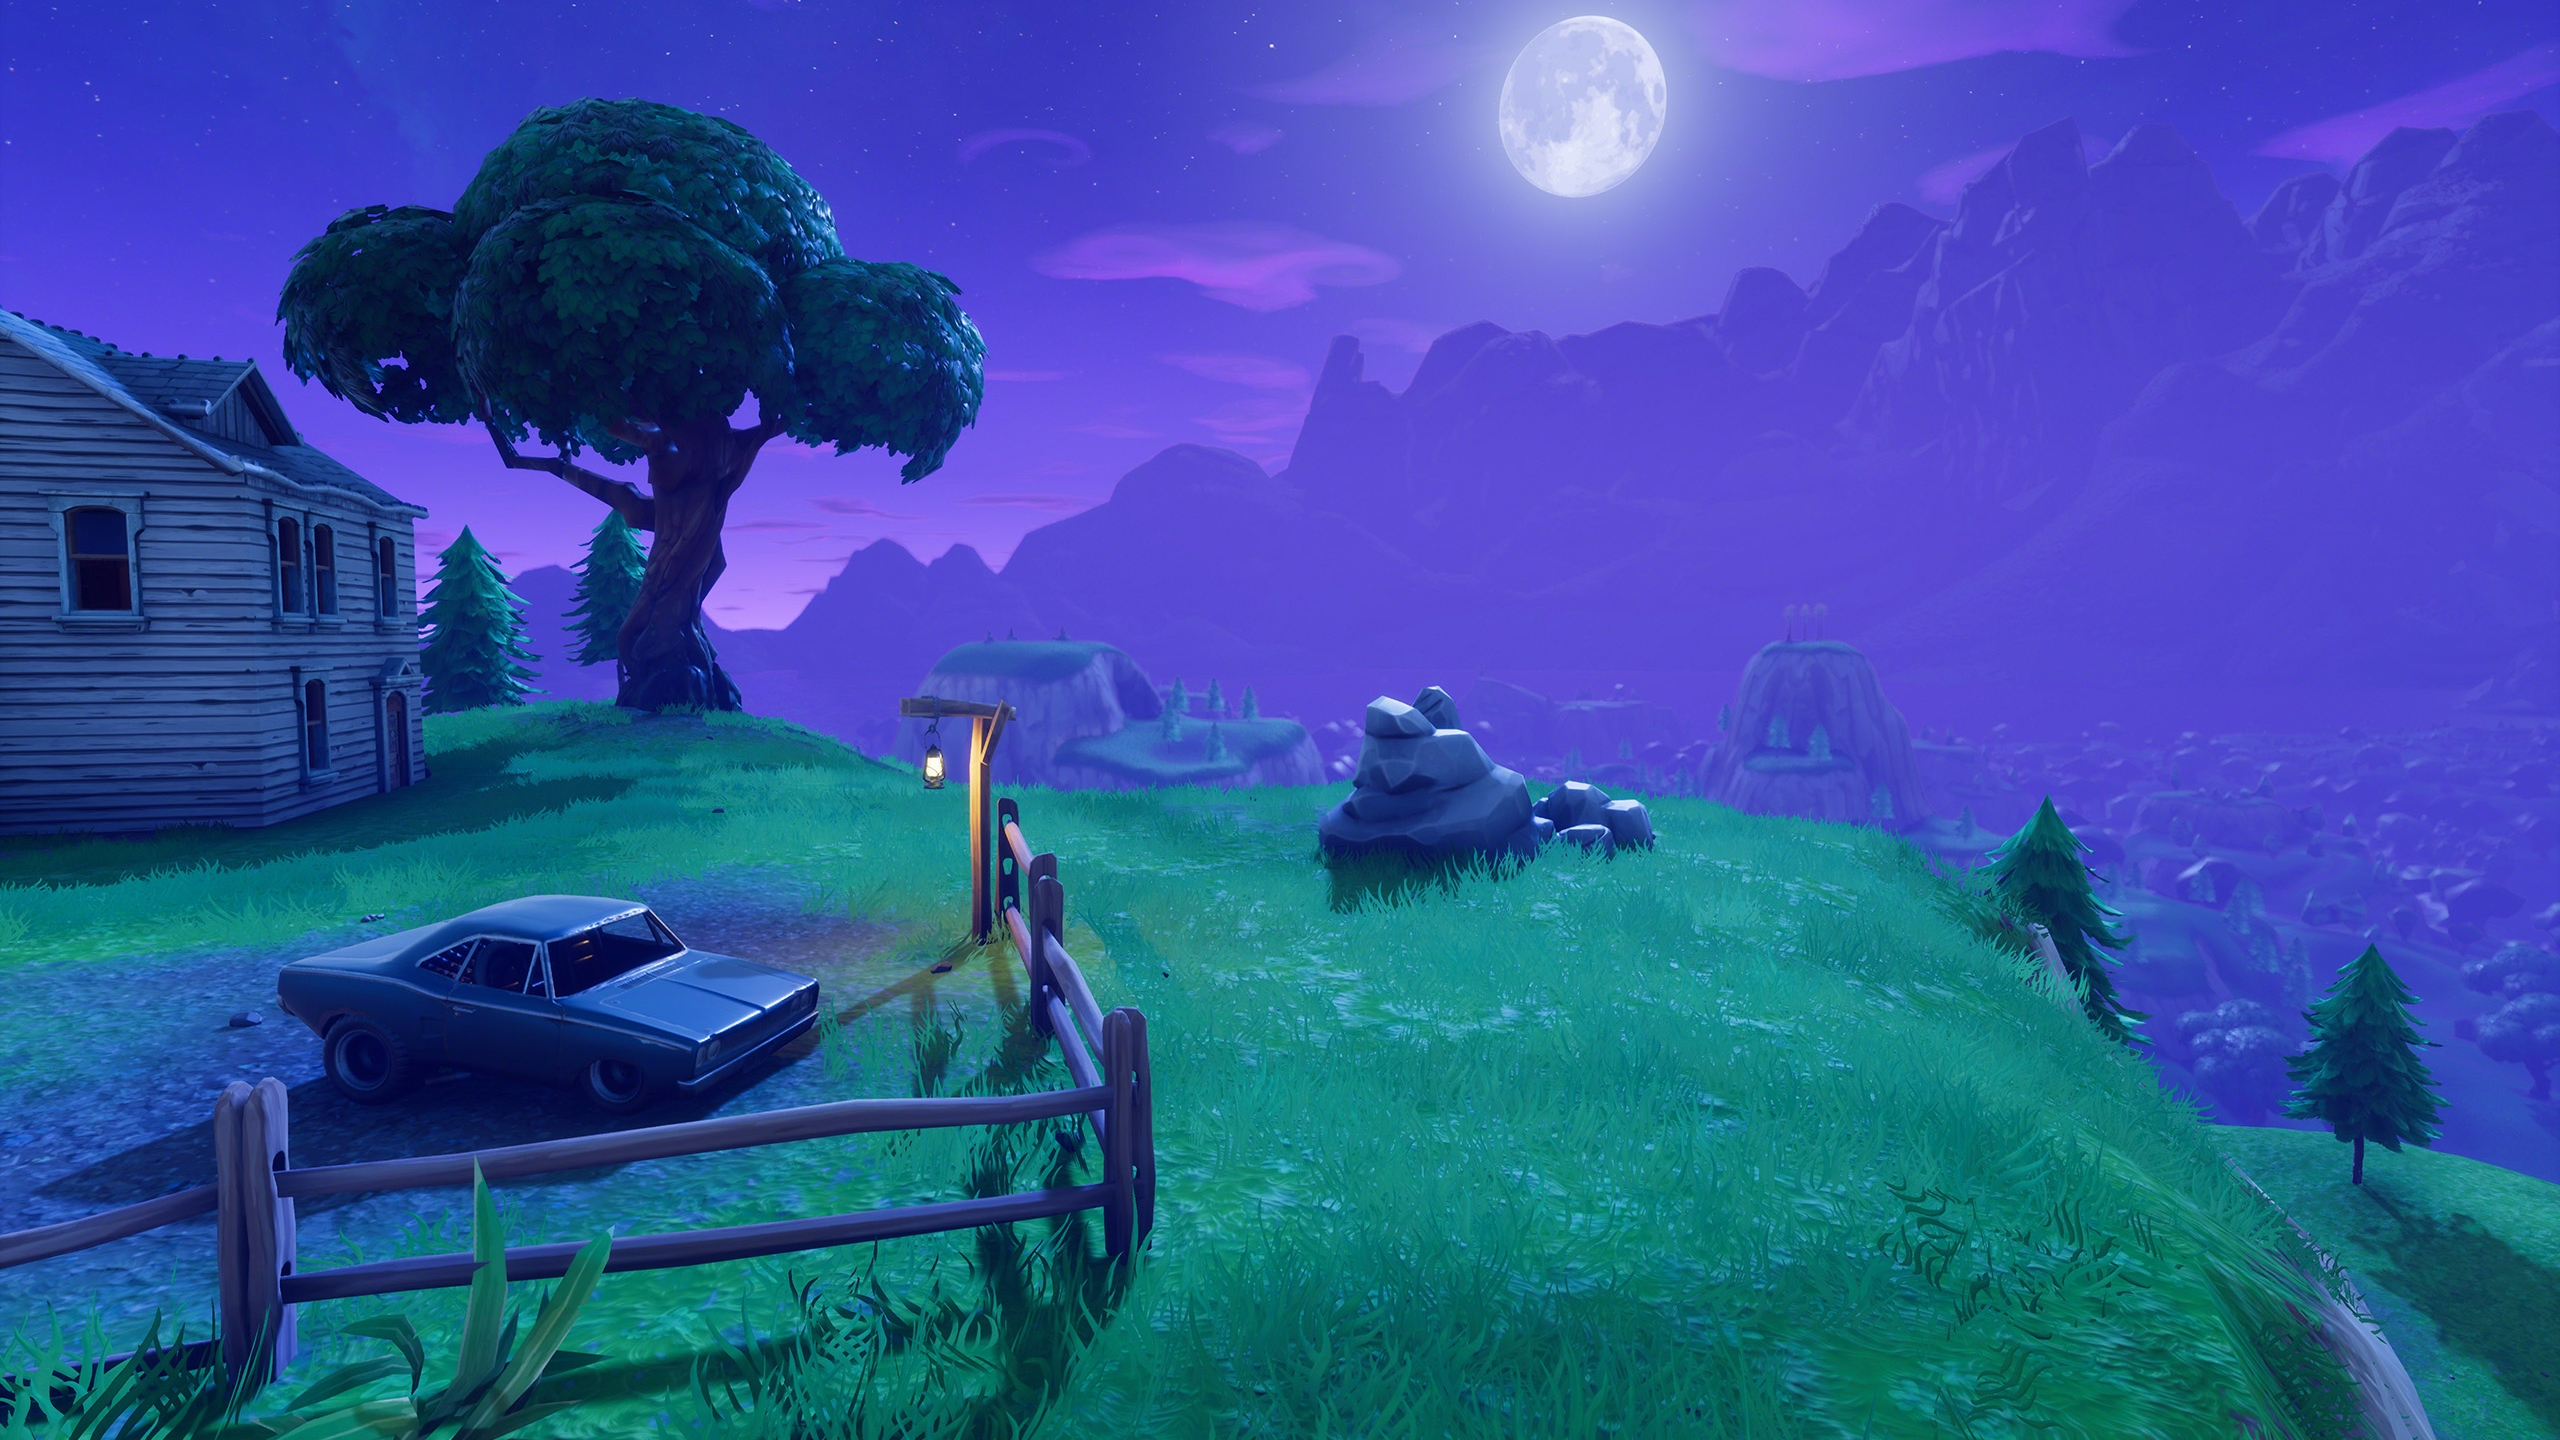 Free Download Fortnite Night House On Hill Hd Wallpaper 163